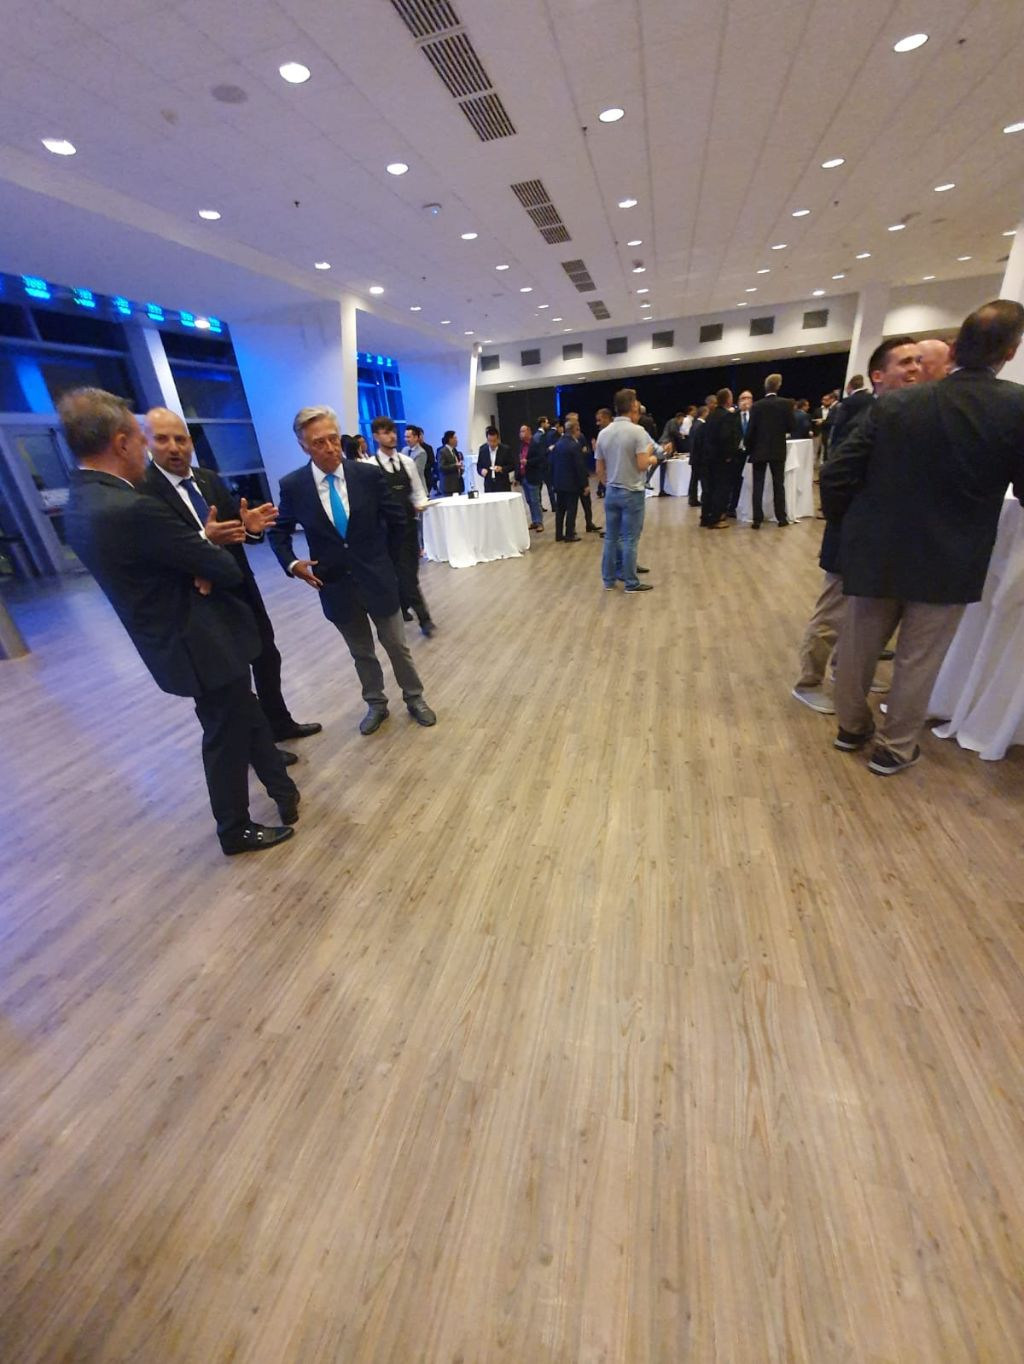 Meeting Robopac 2019 - foto 1.JPG Robopac dealer meeting 2019 - foto 1